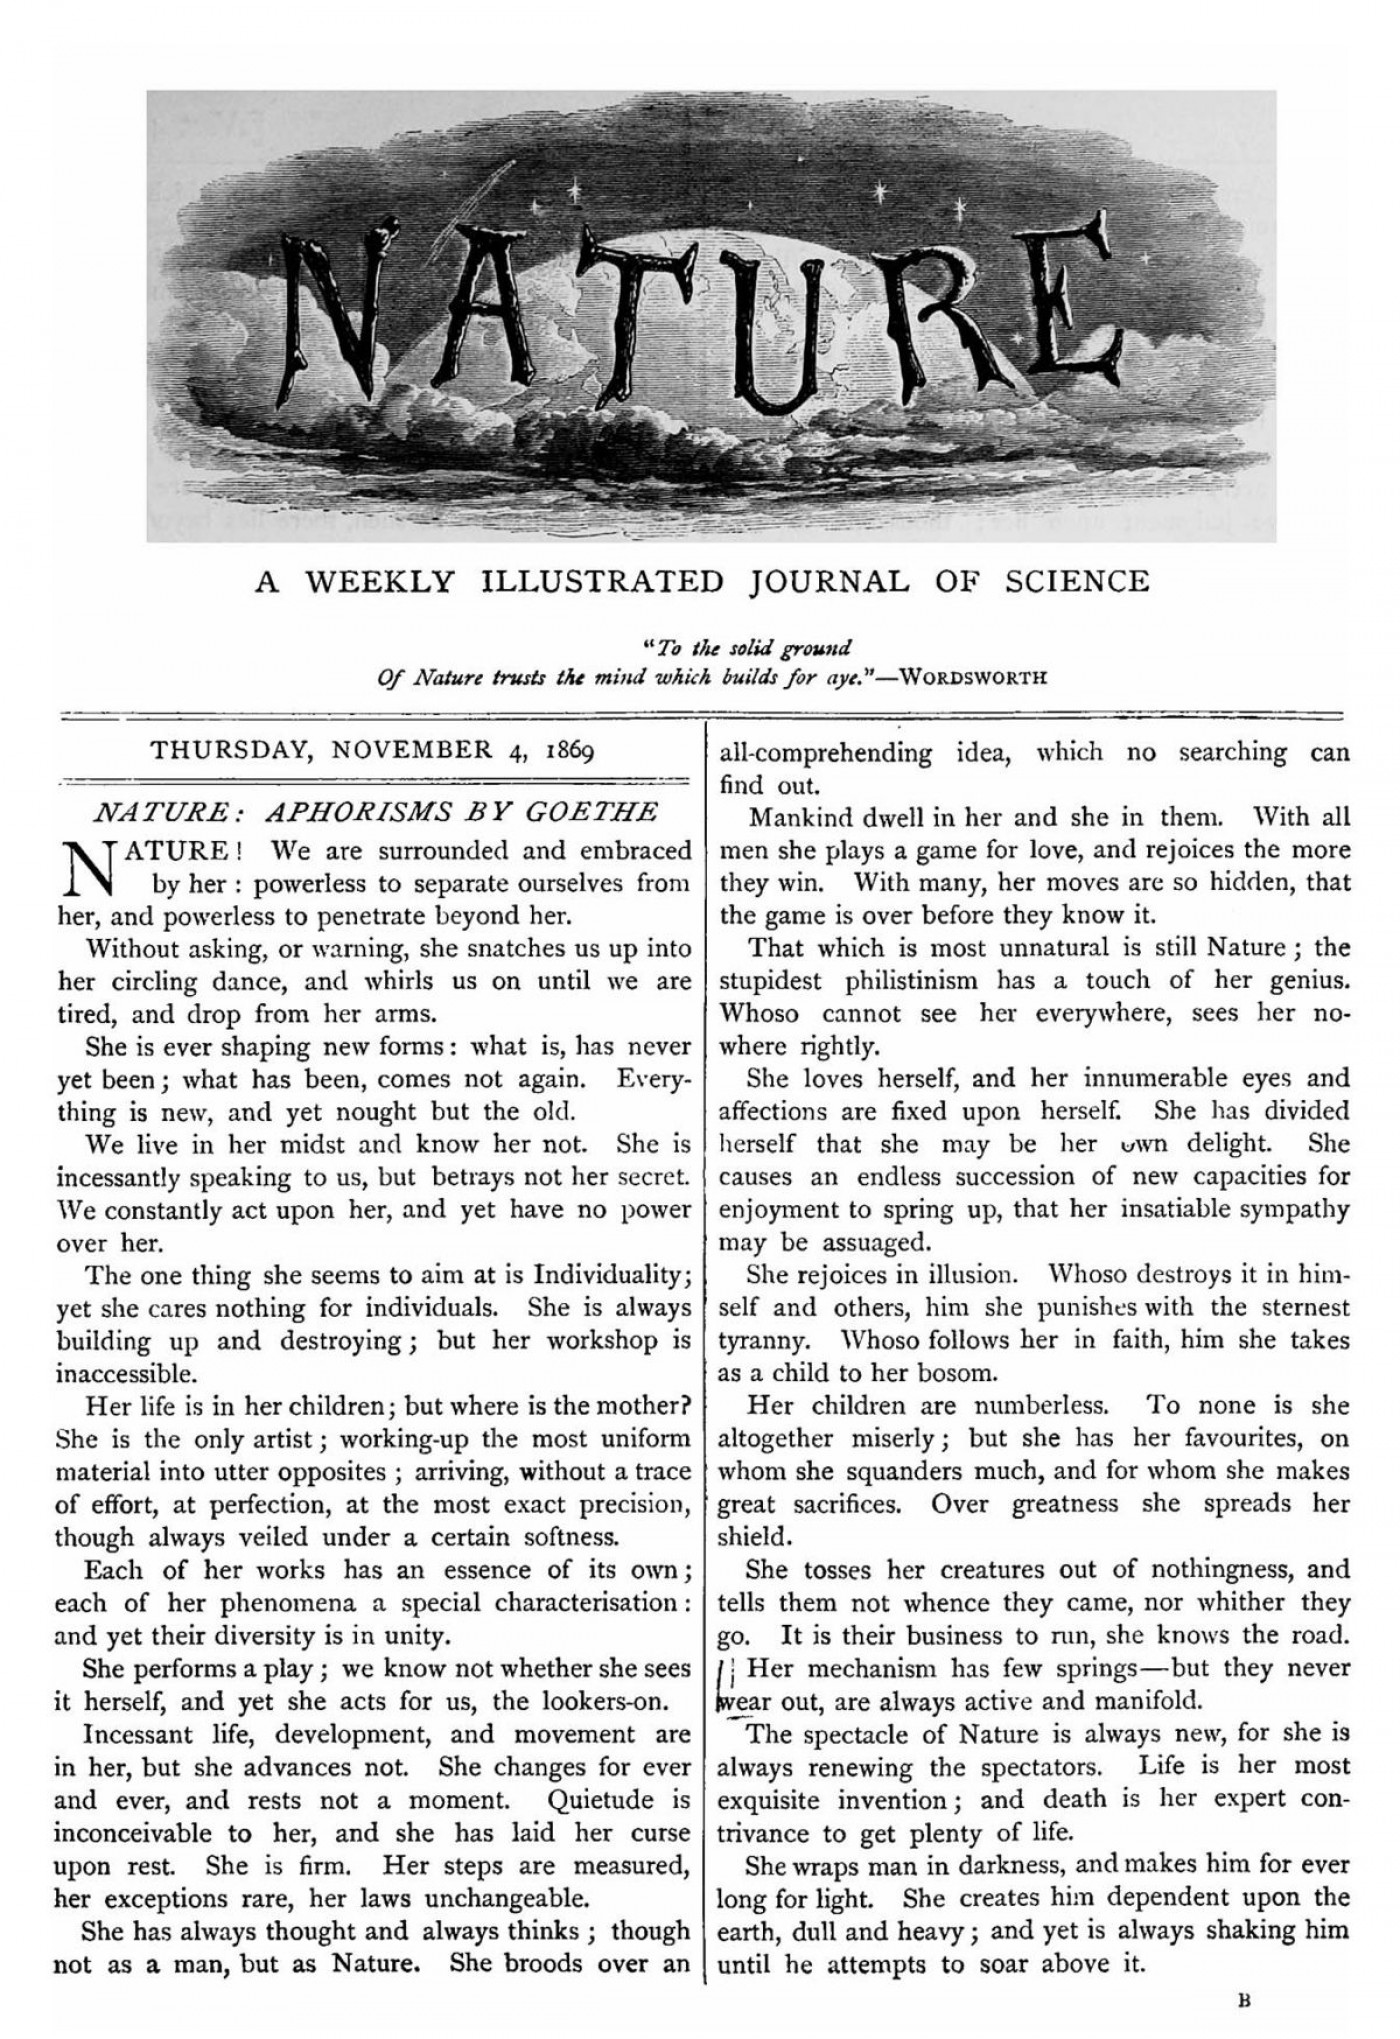 017 Free Research Papers On English Literature Paper 1200px Nature Cover2c November 42c 1869 Amazing 1400